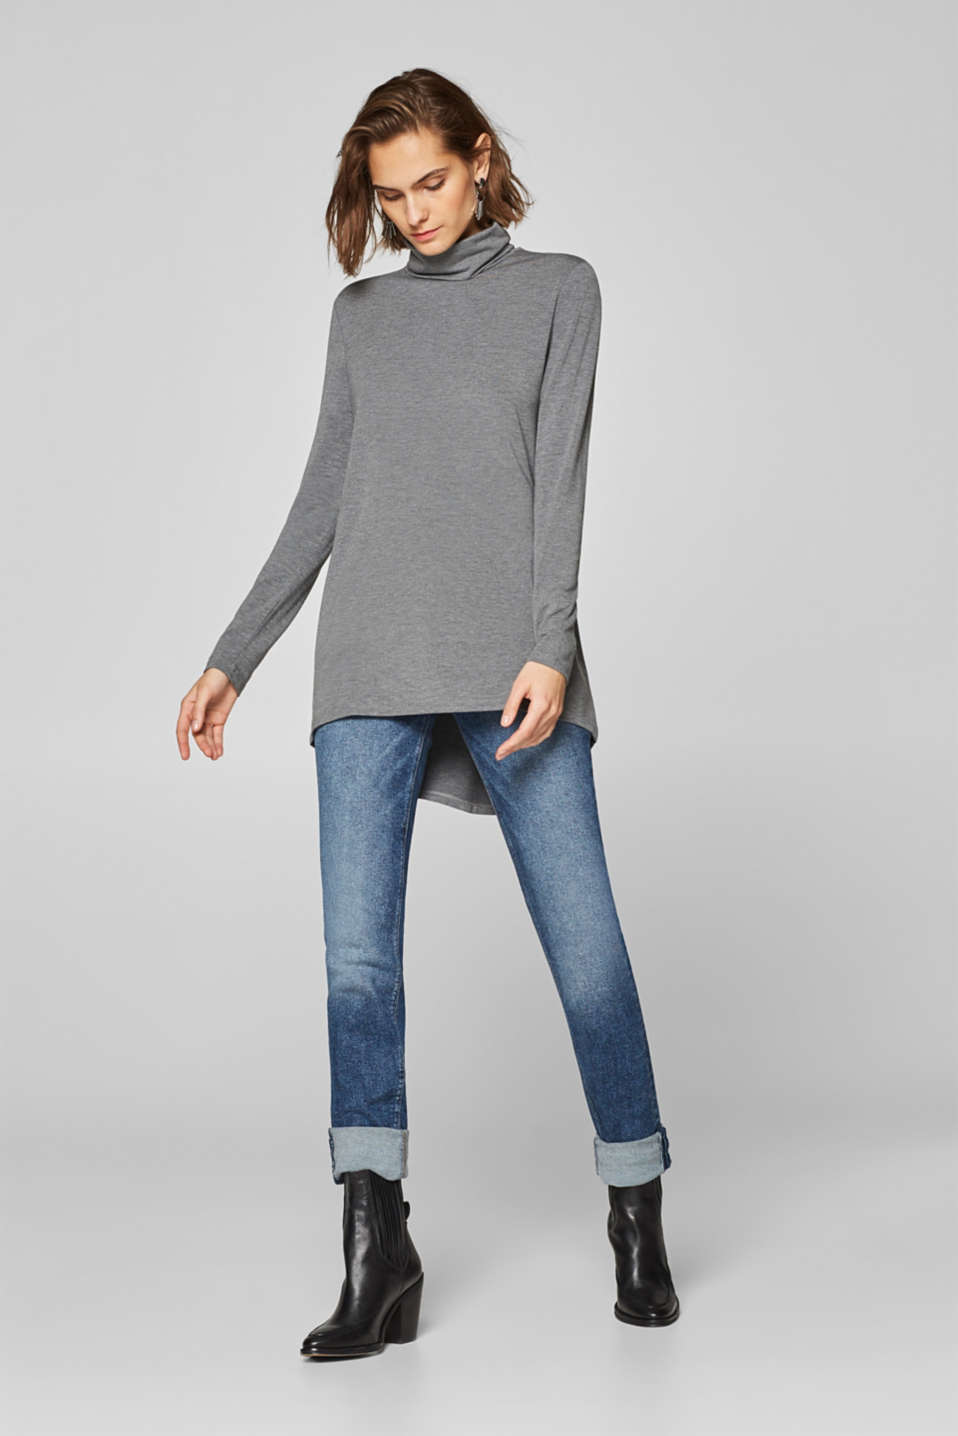 Esprit - Long polo neck long sleeve top with a high-low hem